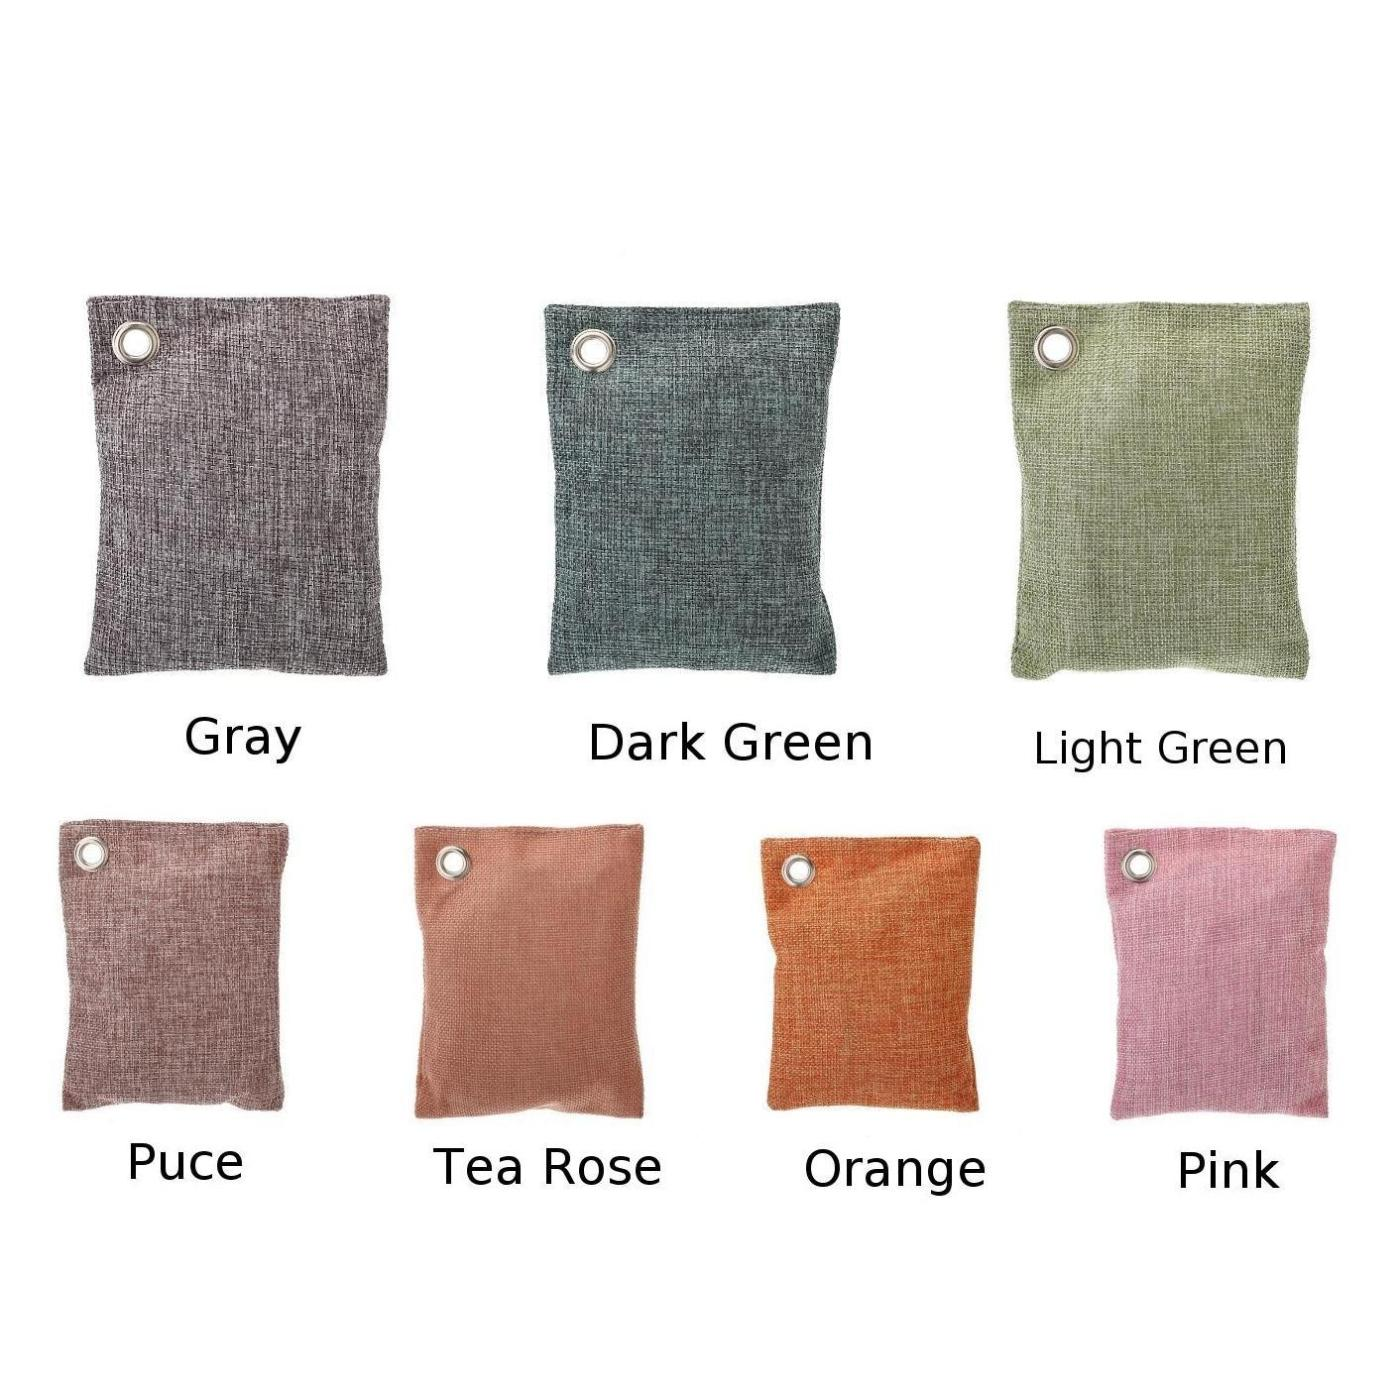 100g Air Purify Bag Fresh Activated Carbon Bamboo Charcoal Carbon Bags Mold Odour Remove For Home Car Office